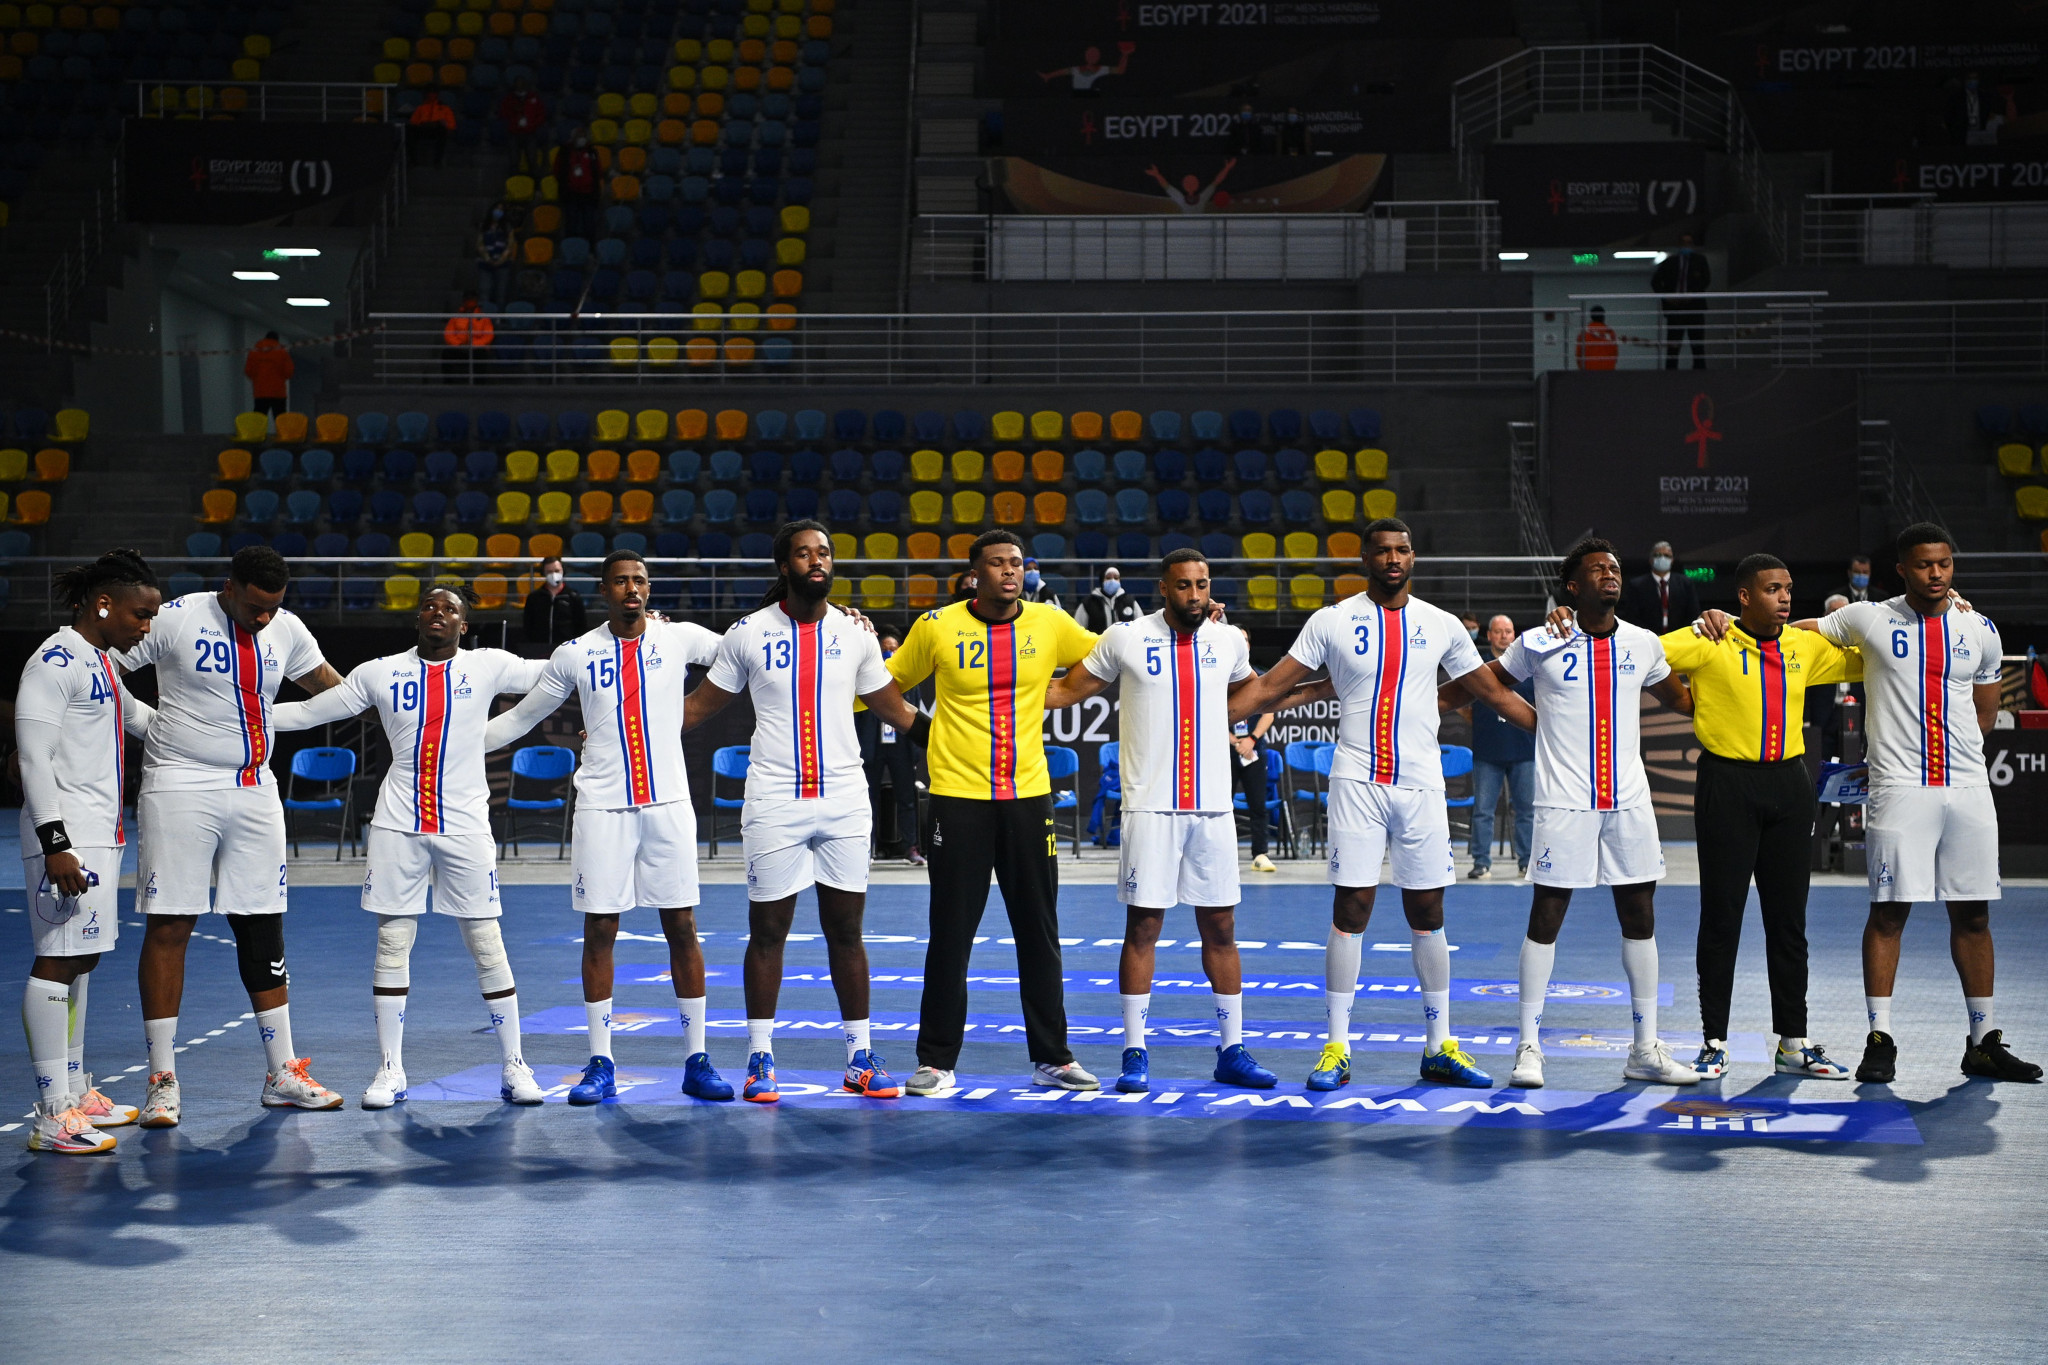 Cape Verde announced their withdrawal from the World Men's Handball Championship after positive coronavirus tests led to the cancellation of their match with Germany yesterday ©Getty Images